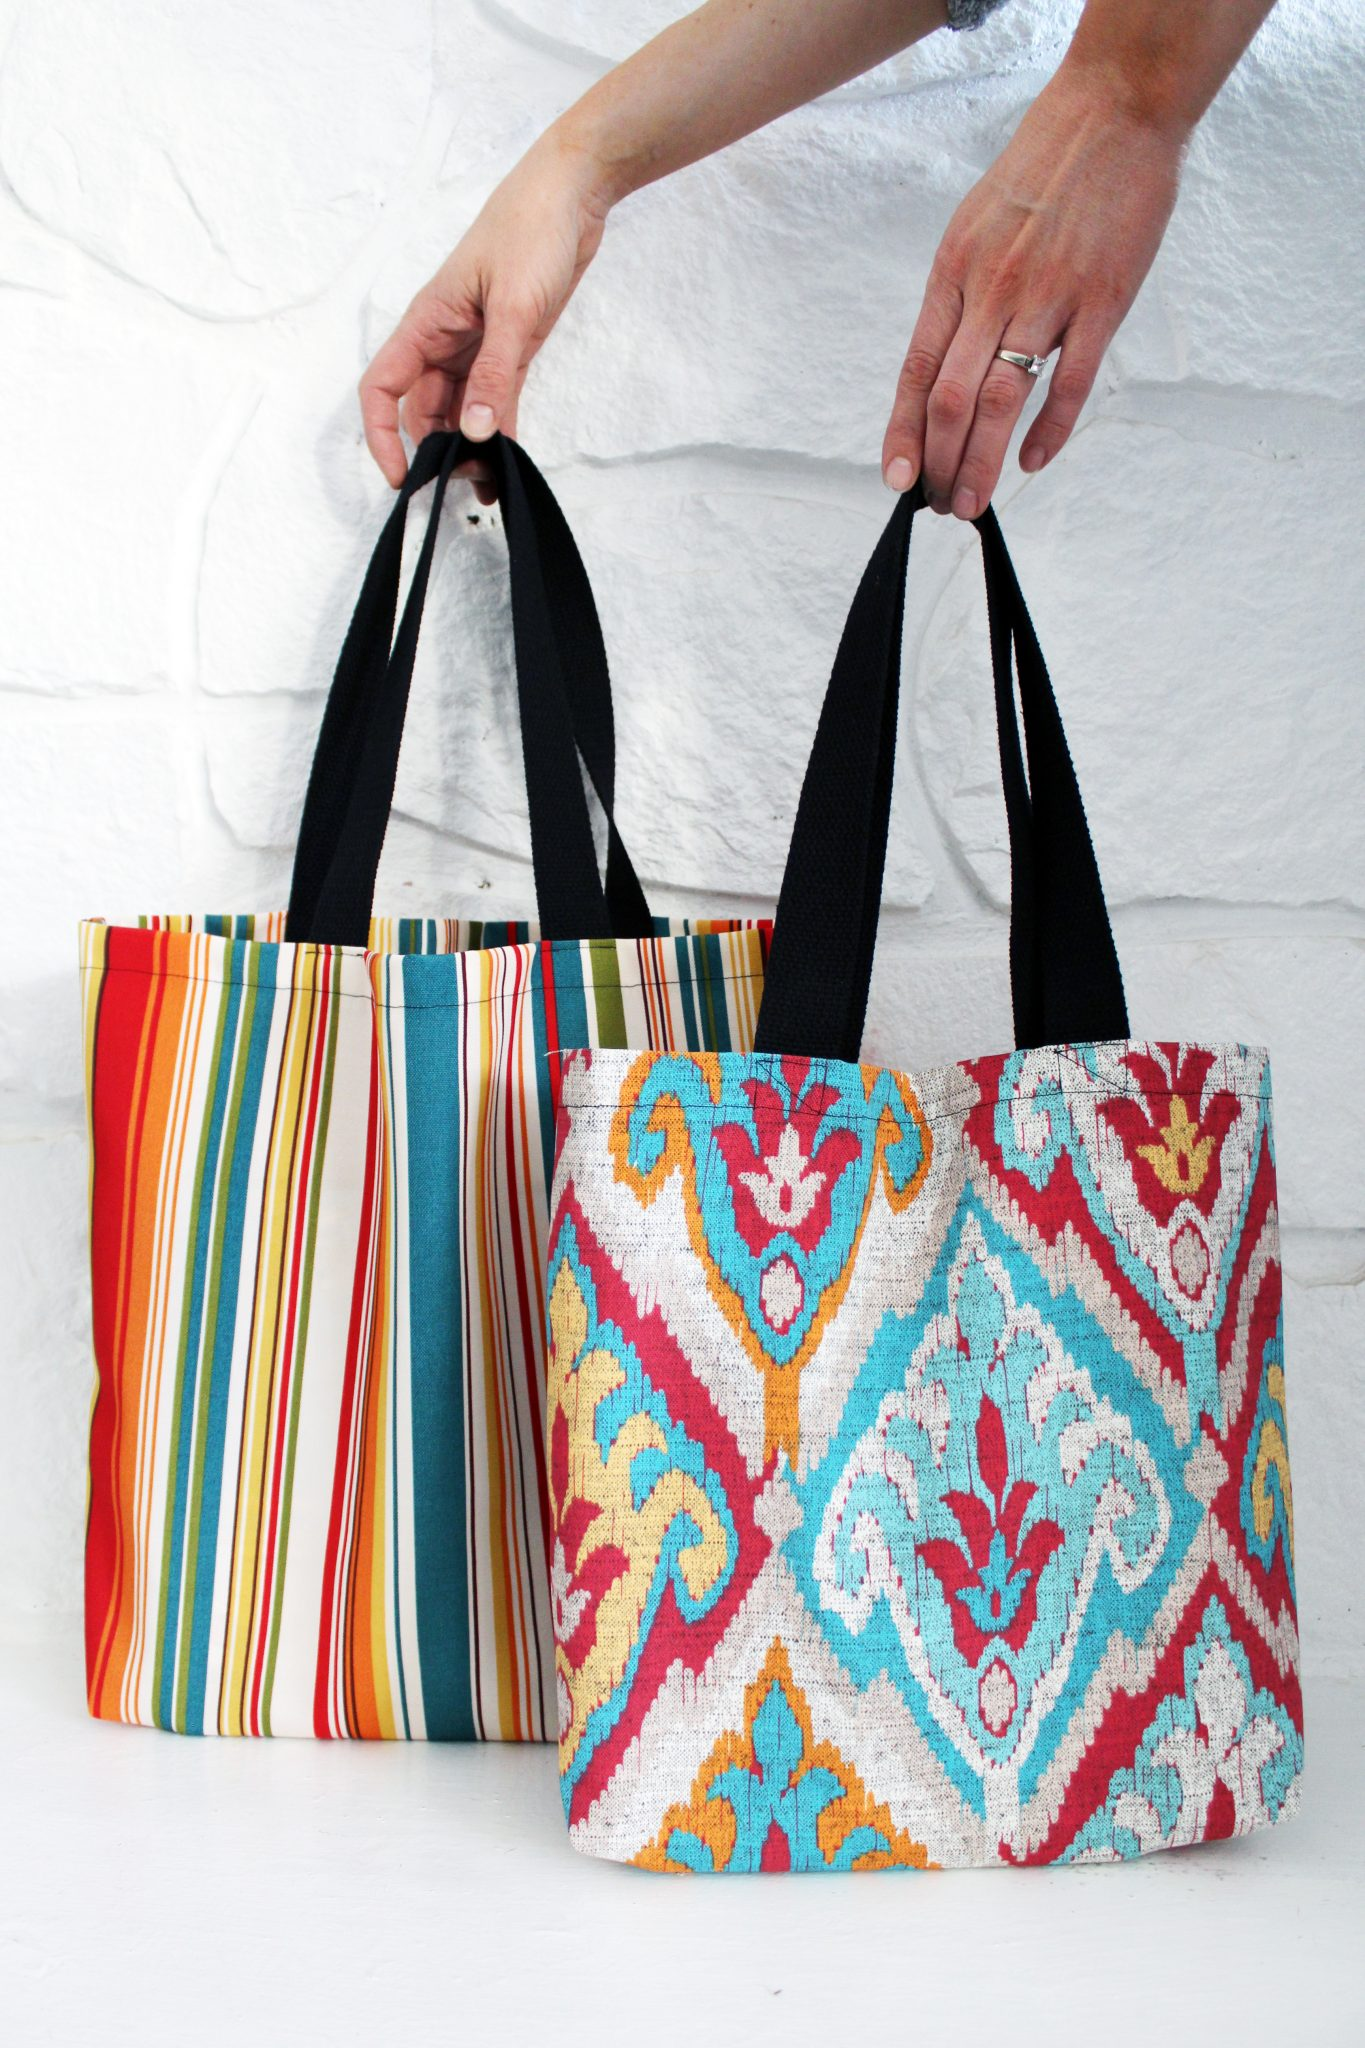 Patterns Purses and Hand Bags Pattern Fashion Accessory